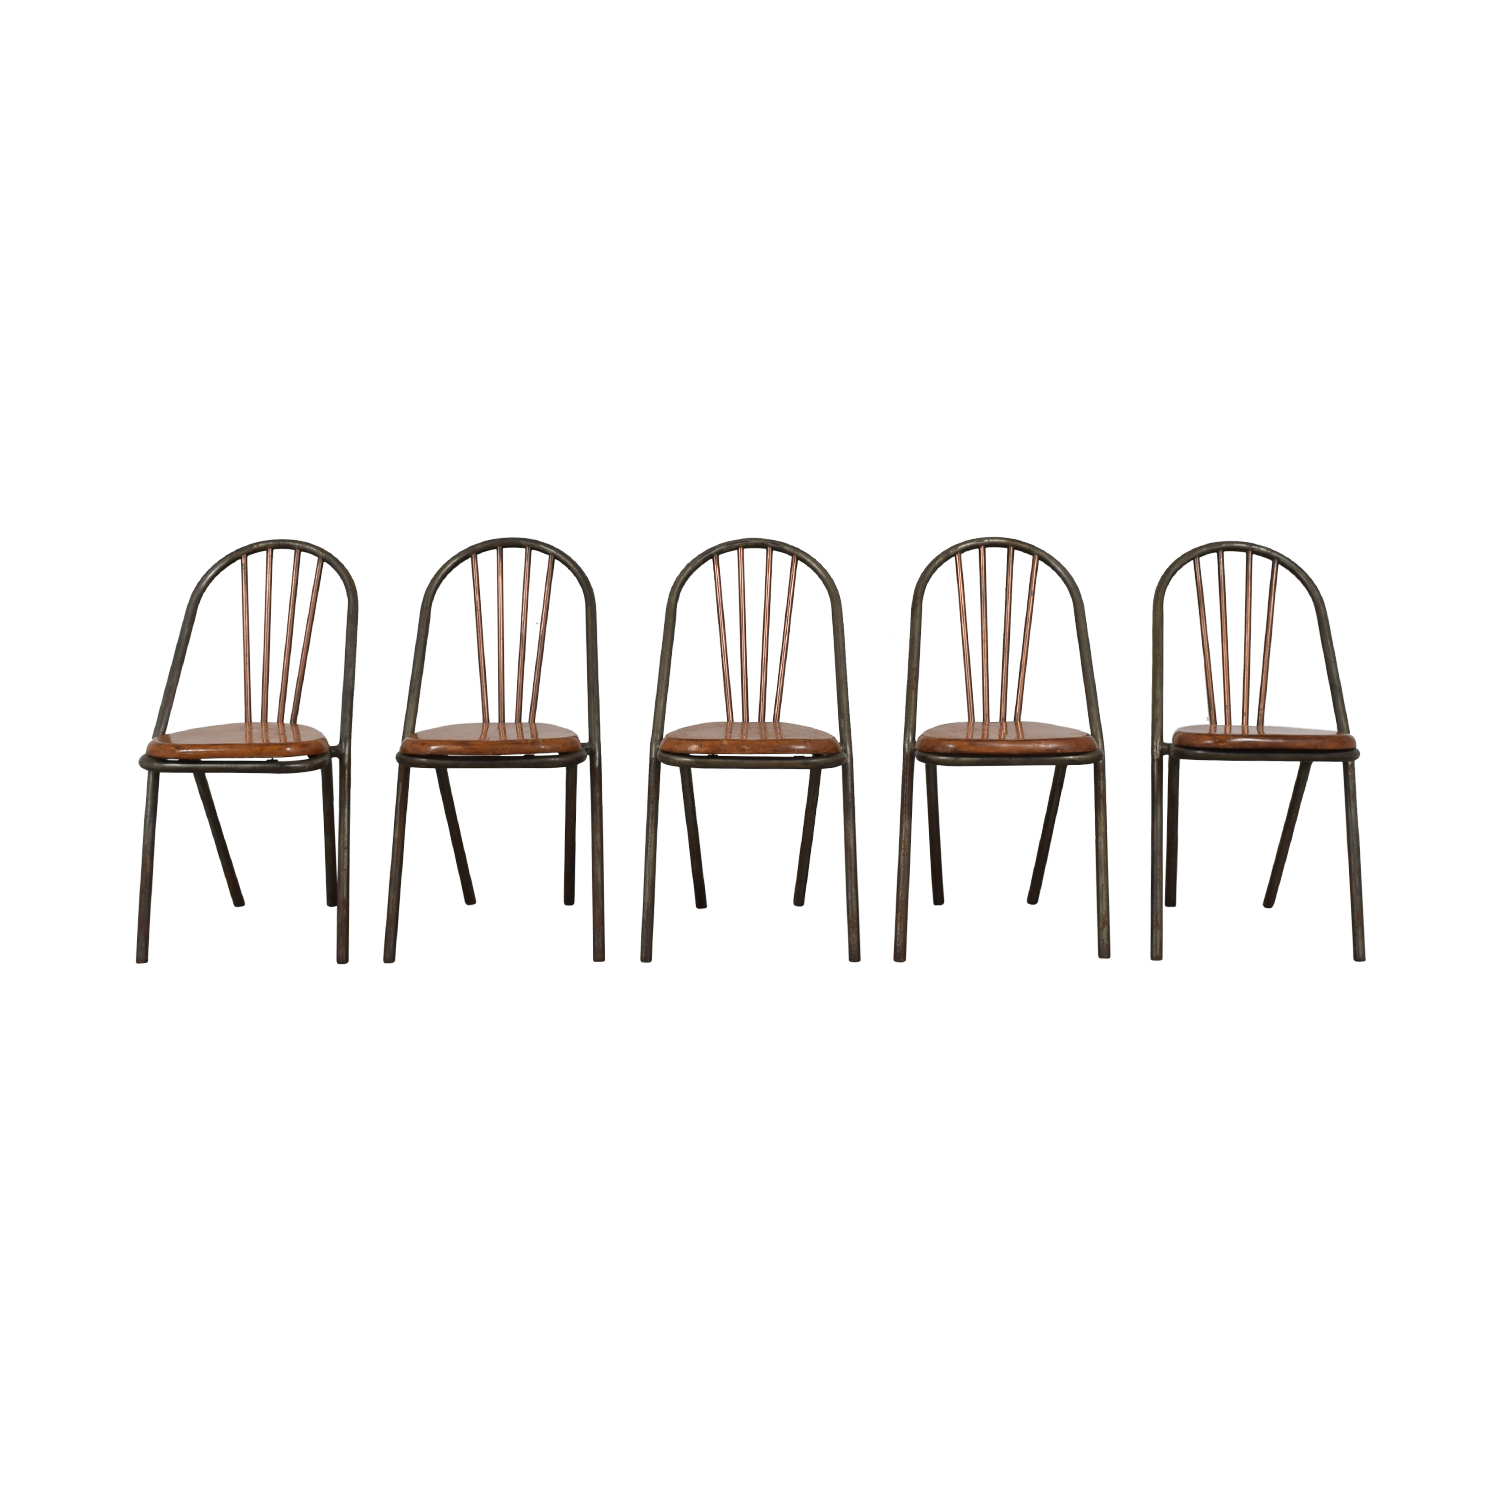 Furniture Masters Furniture Masters Wood and Metal Dining Chairs grey metal legs , dark butterscotch seat, copper back rest